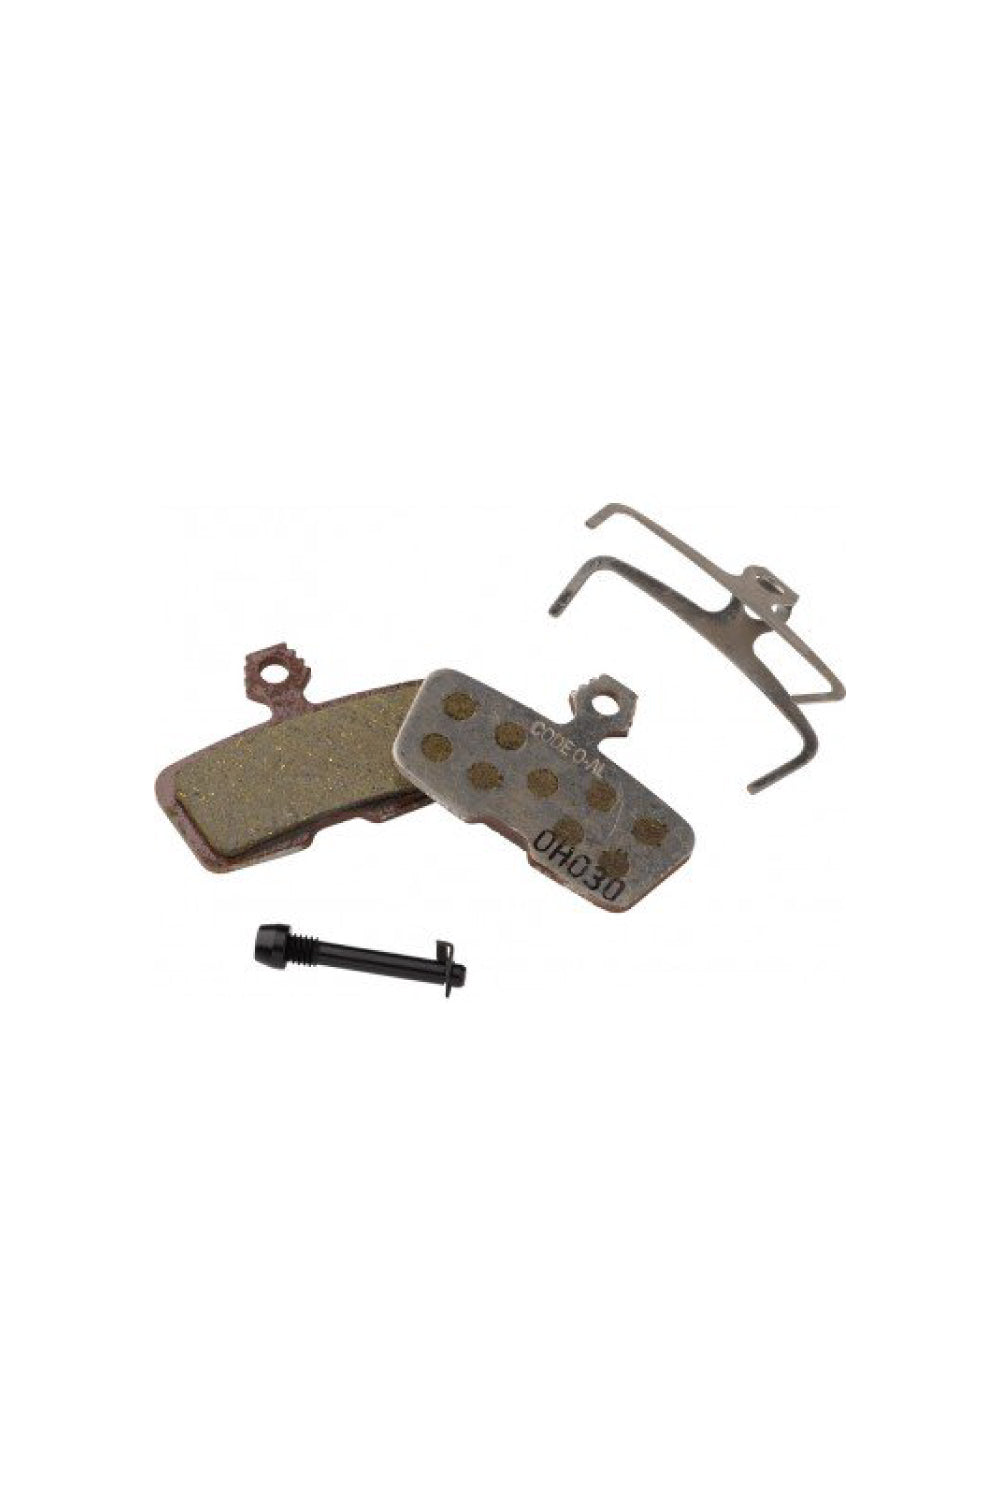 SRAM BRAKE DISC PAD GUIDE ORGANIC/STAINLESS - ALLOY BACKED